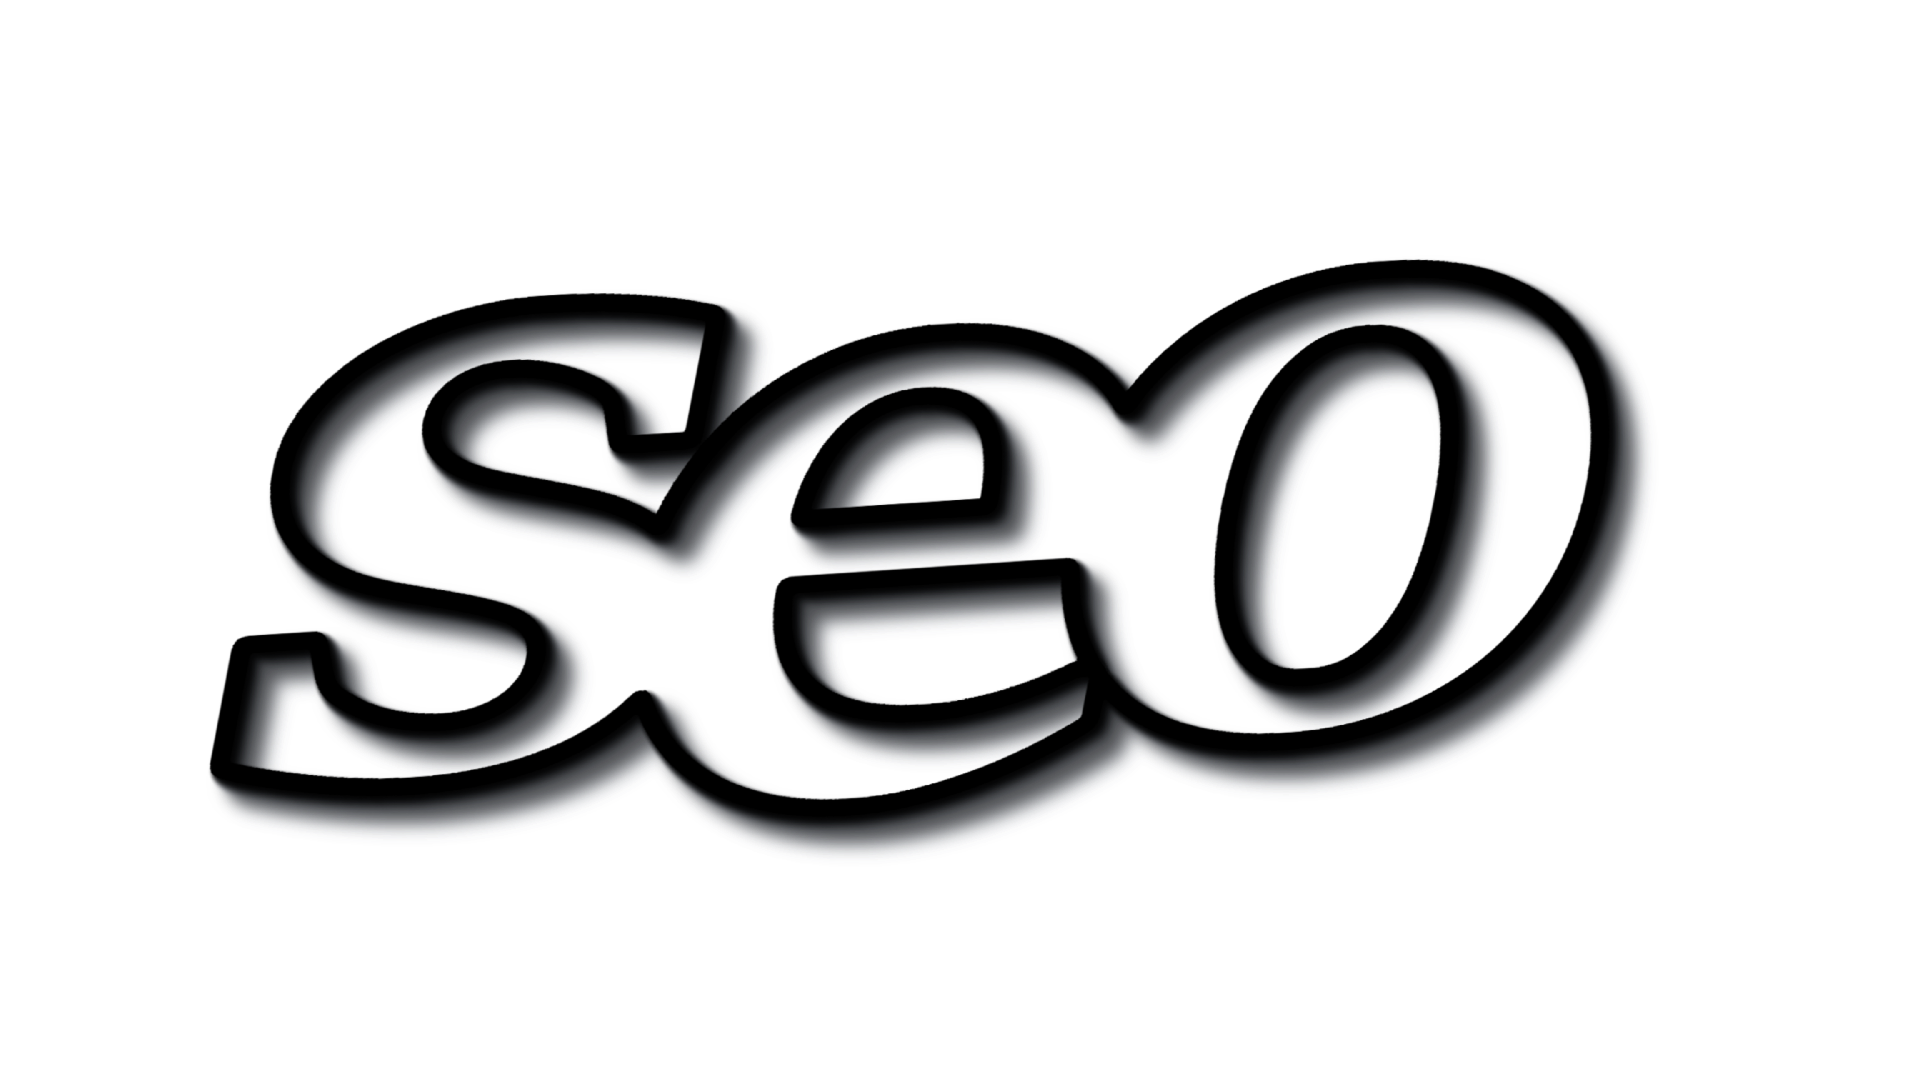 4 Things To Look For In A SEO Agency Going Into 2020 To Ensure Growth